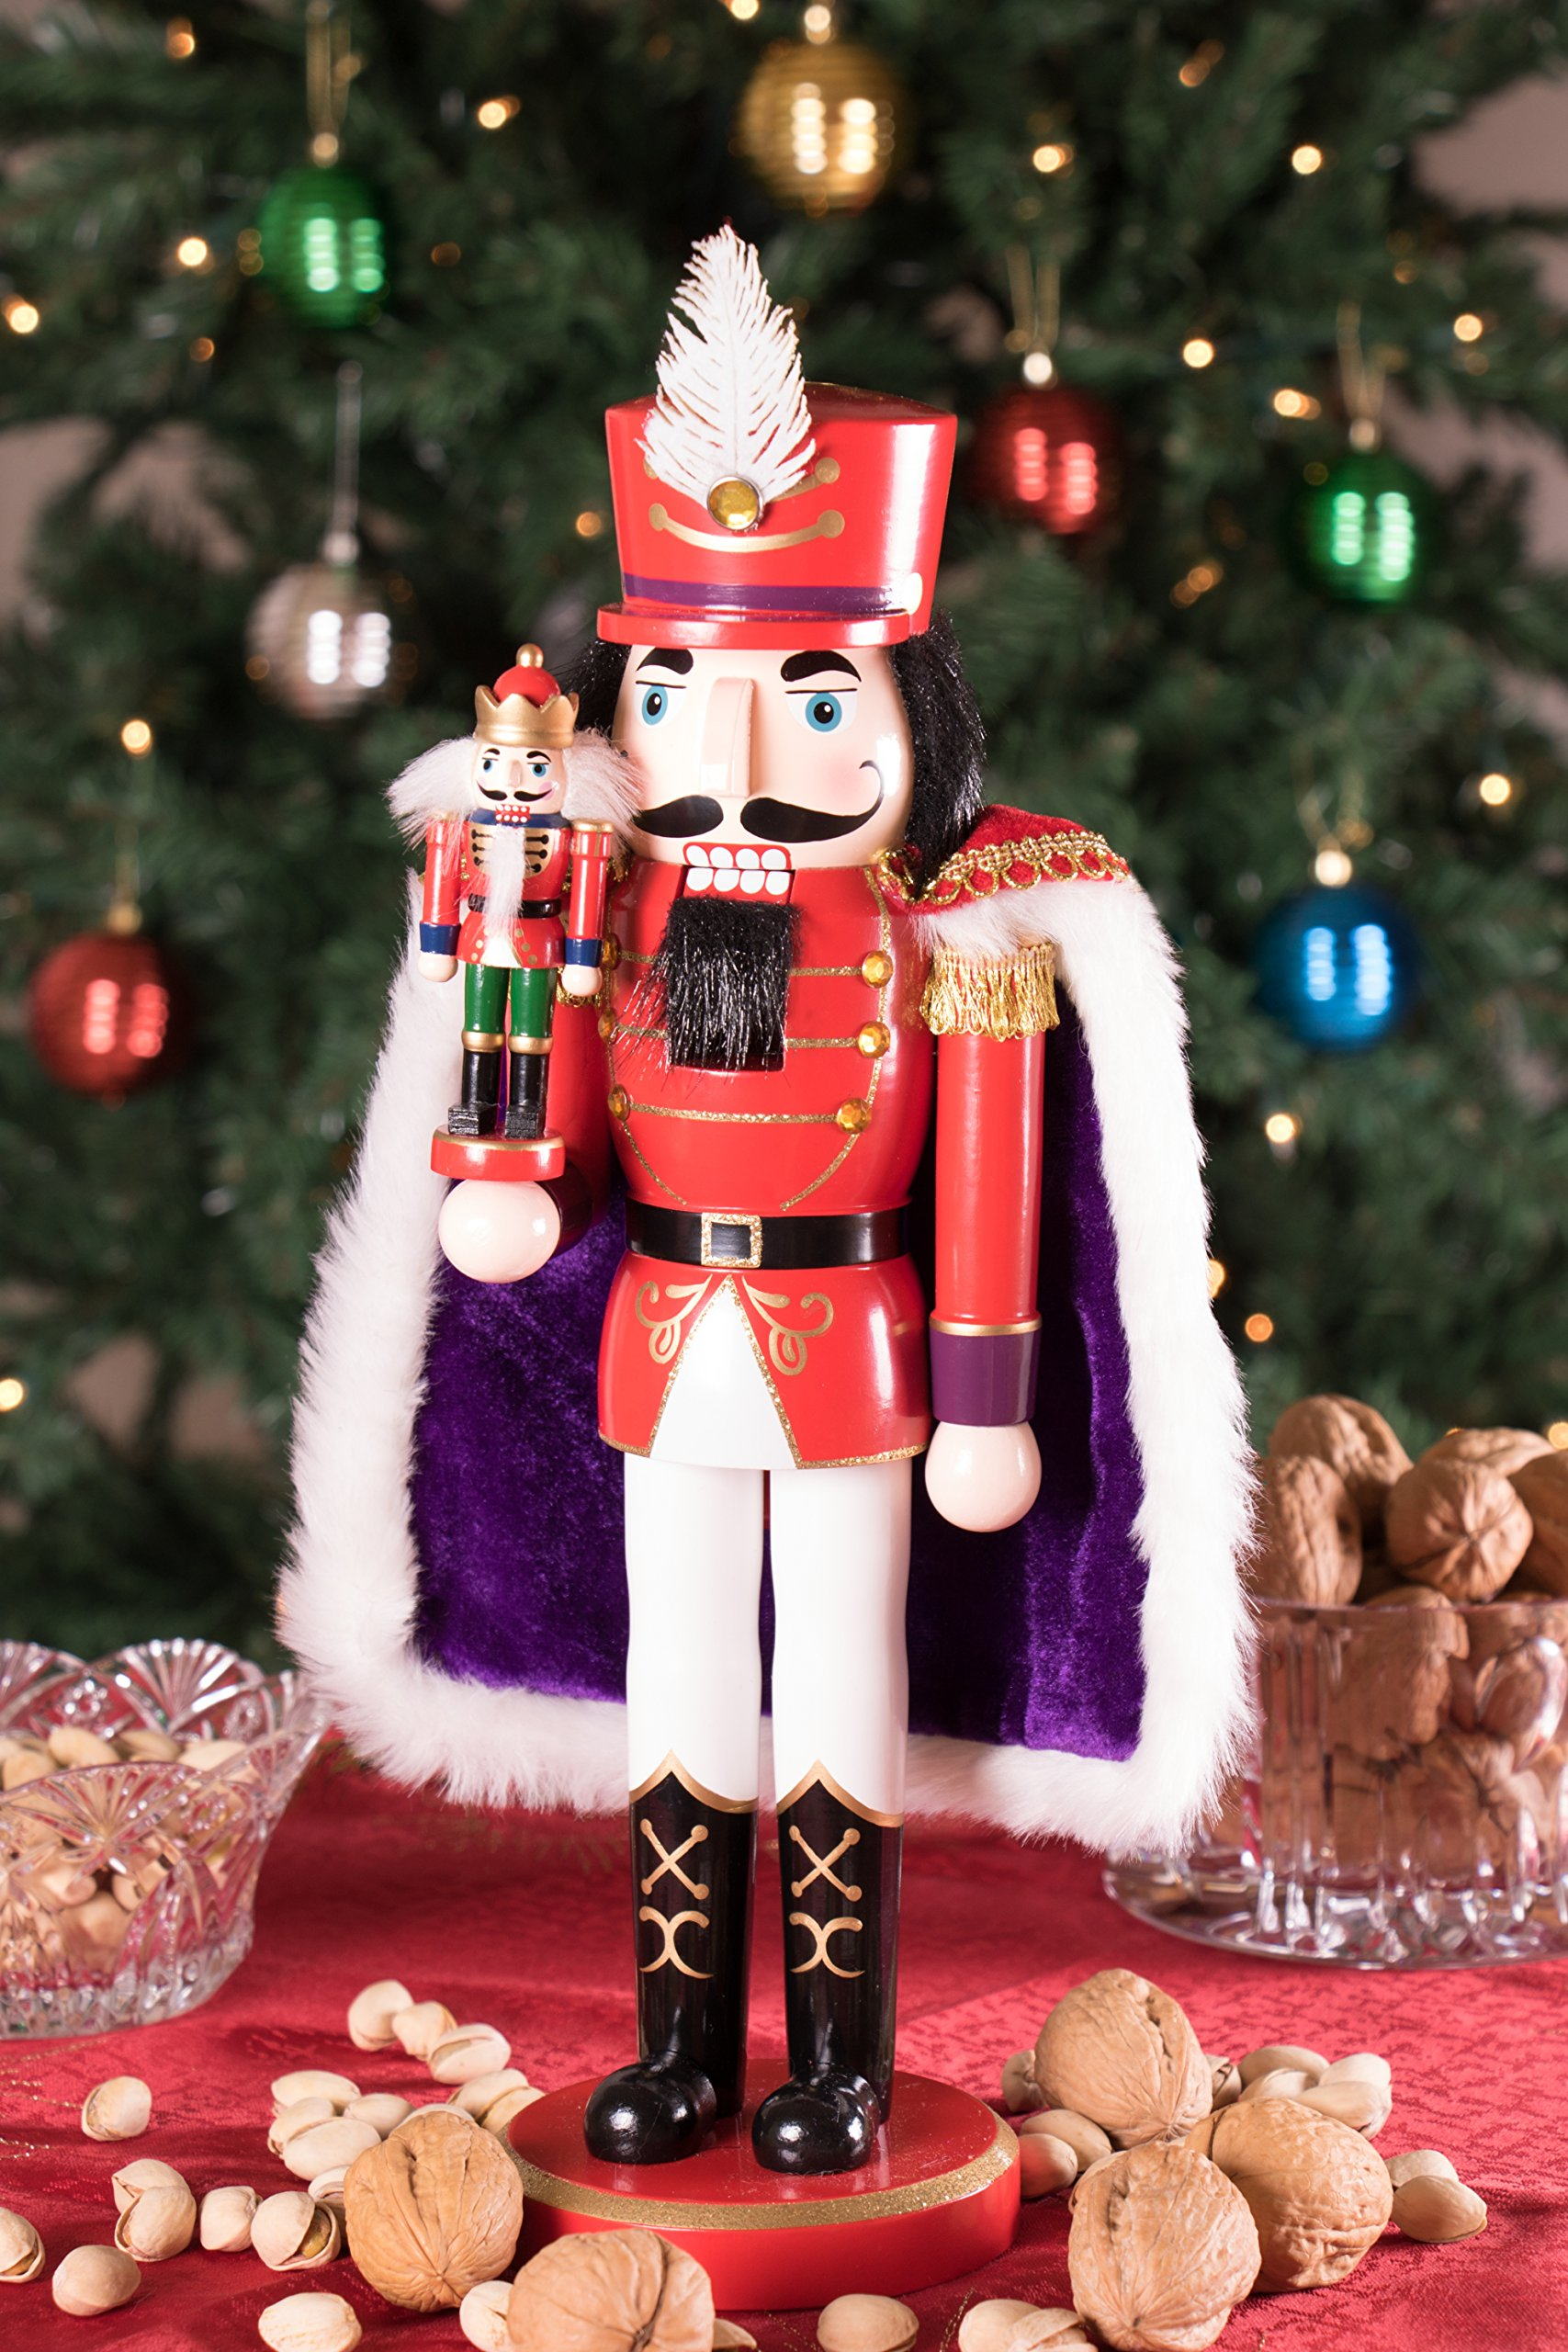 Clever Creations Red Prince Wooden Nutcracker Wearing Purple Cape Holding Toy Nutcracker Gift | Festive Decor | Perfect for Shelves and Tables | 100% Wood | 14'' Tall by Clever Creations (Image #2)